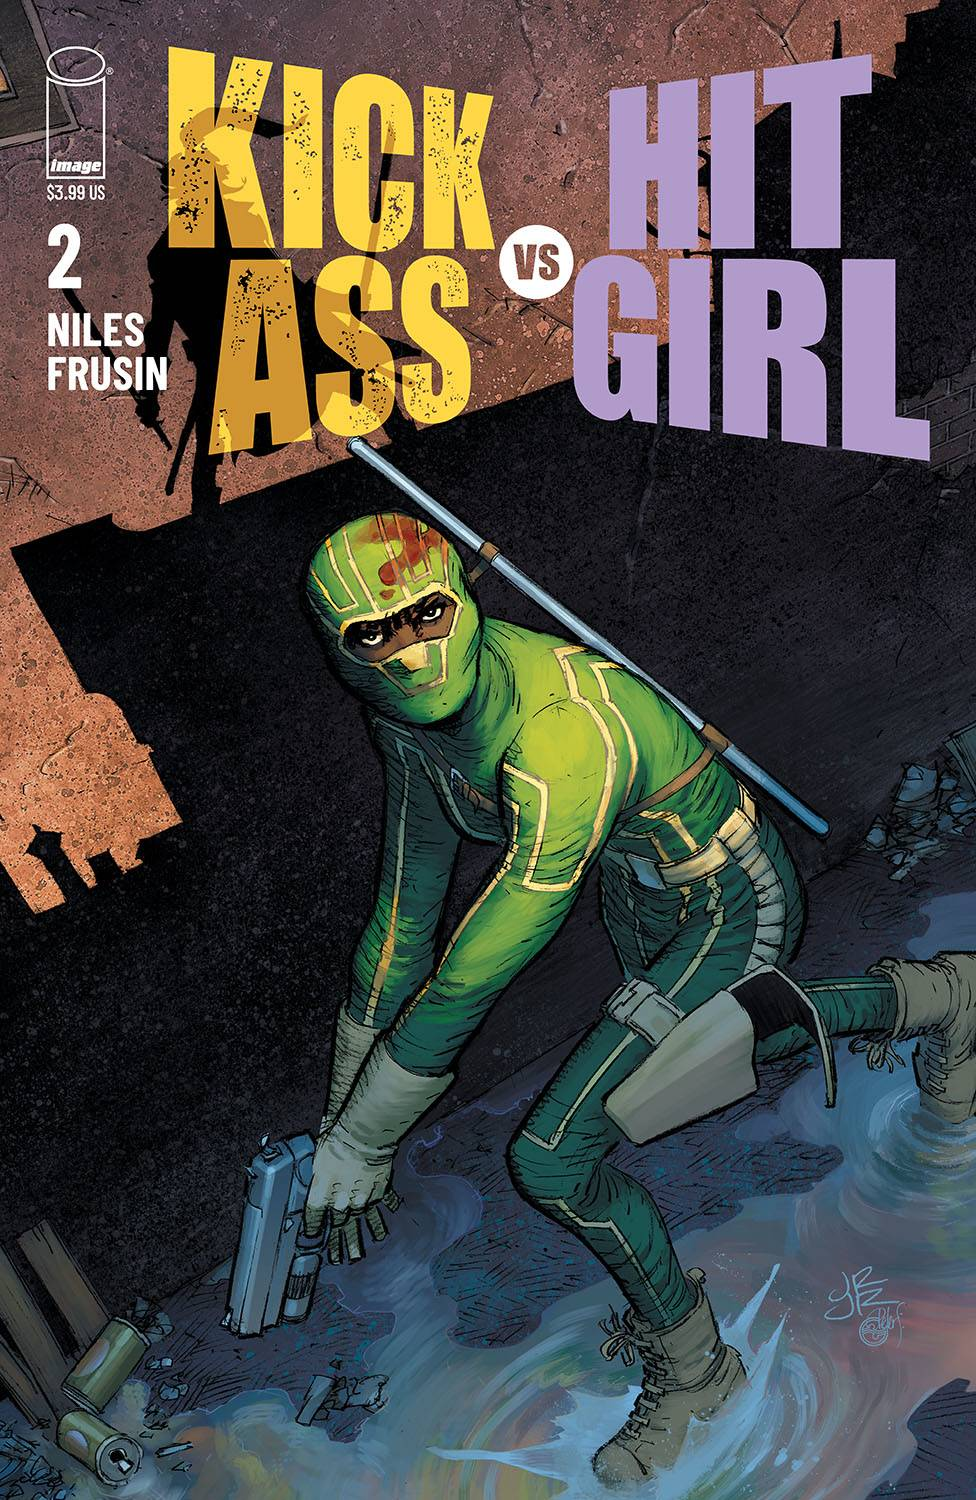 KICK-ASS VS HIT-GIRL #2 (OF 5) CVR A ROMITA JR (MR)